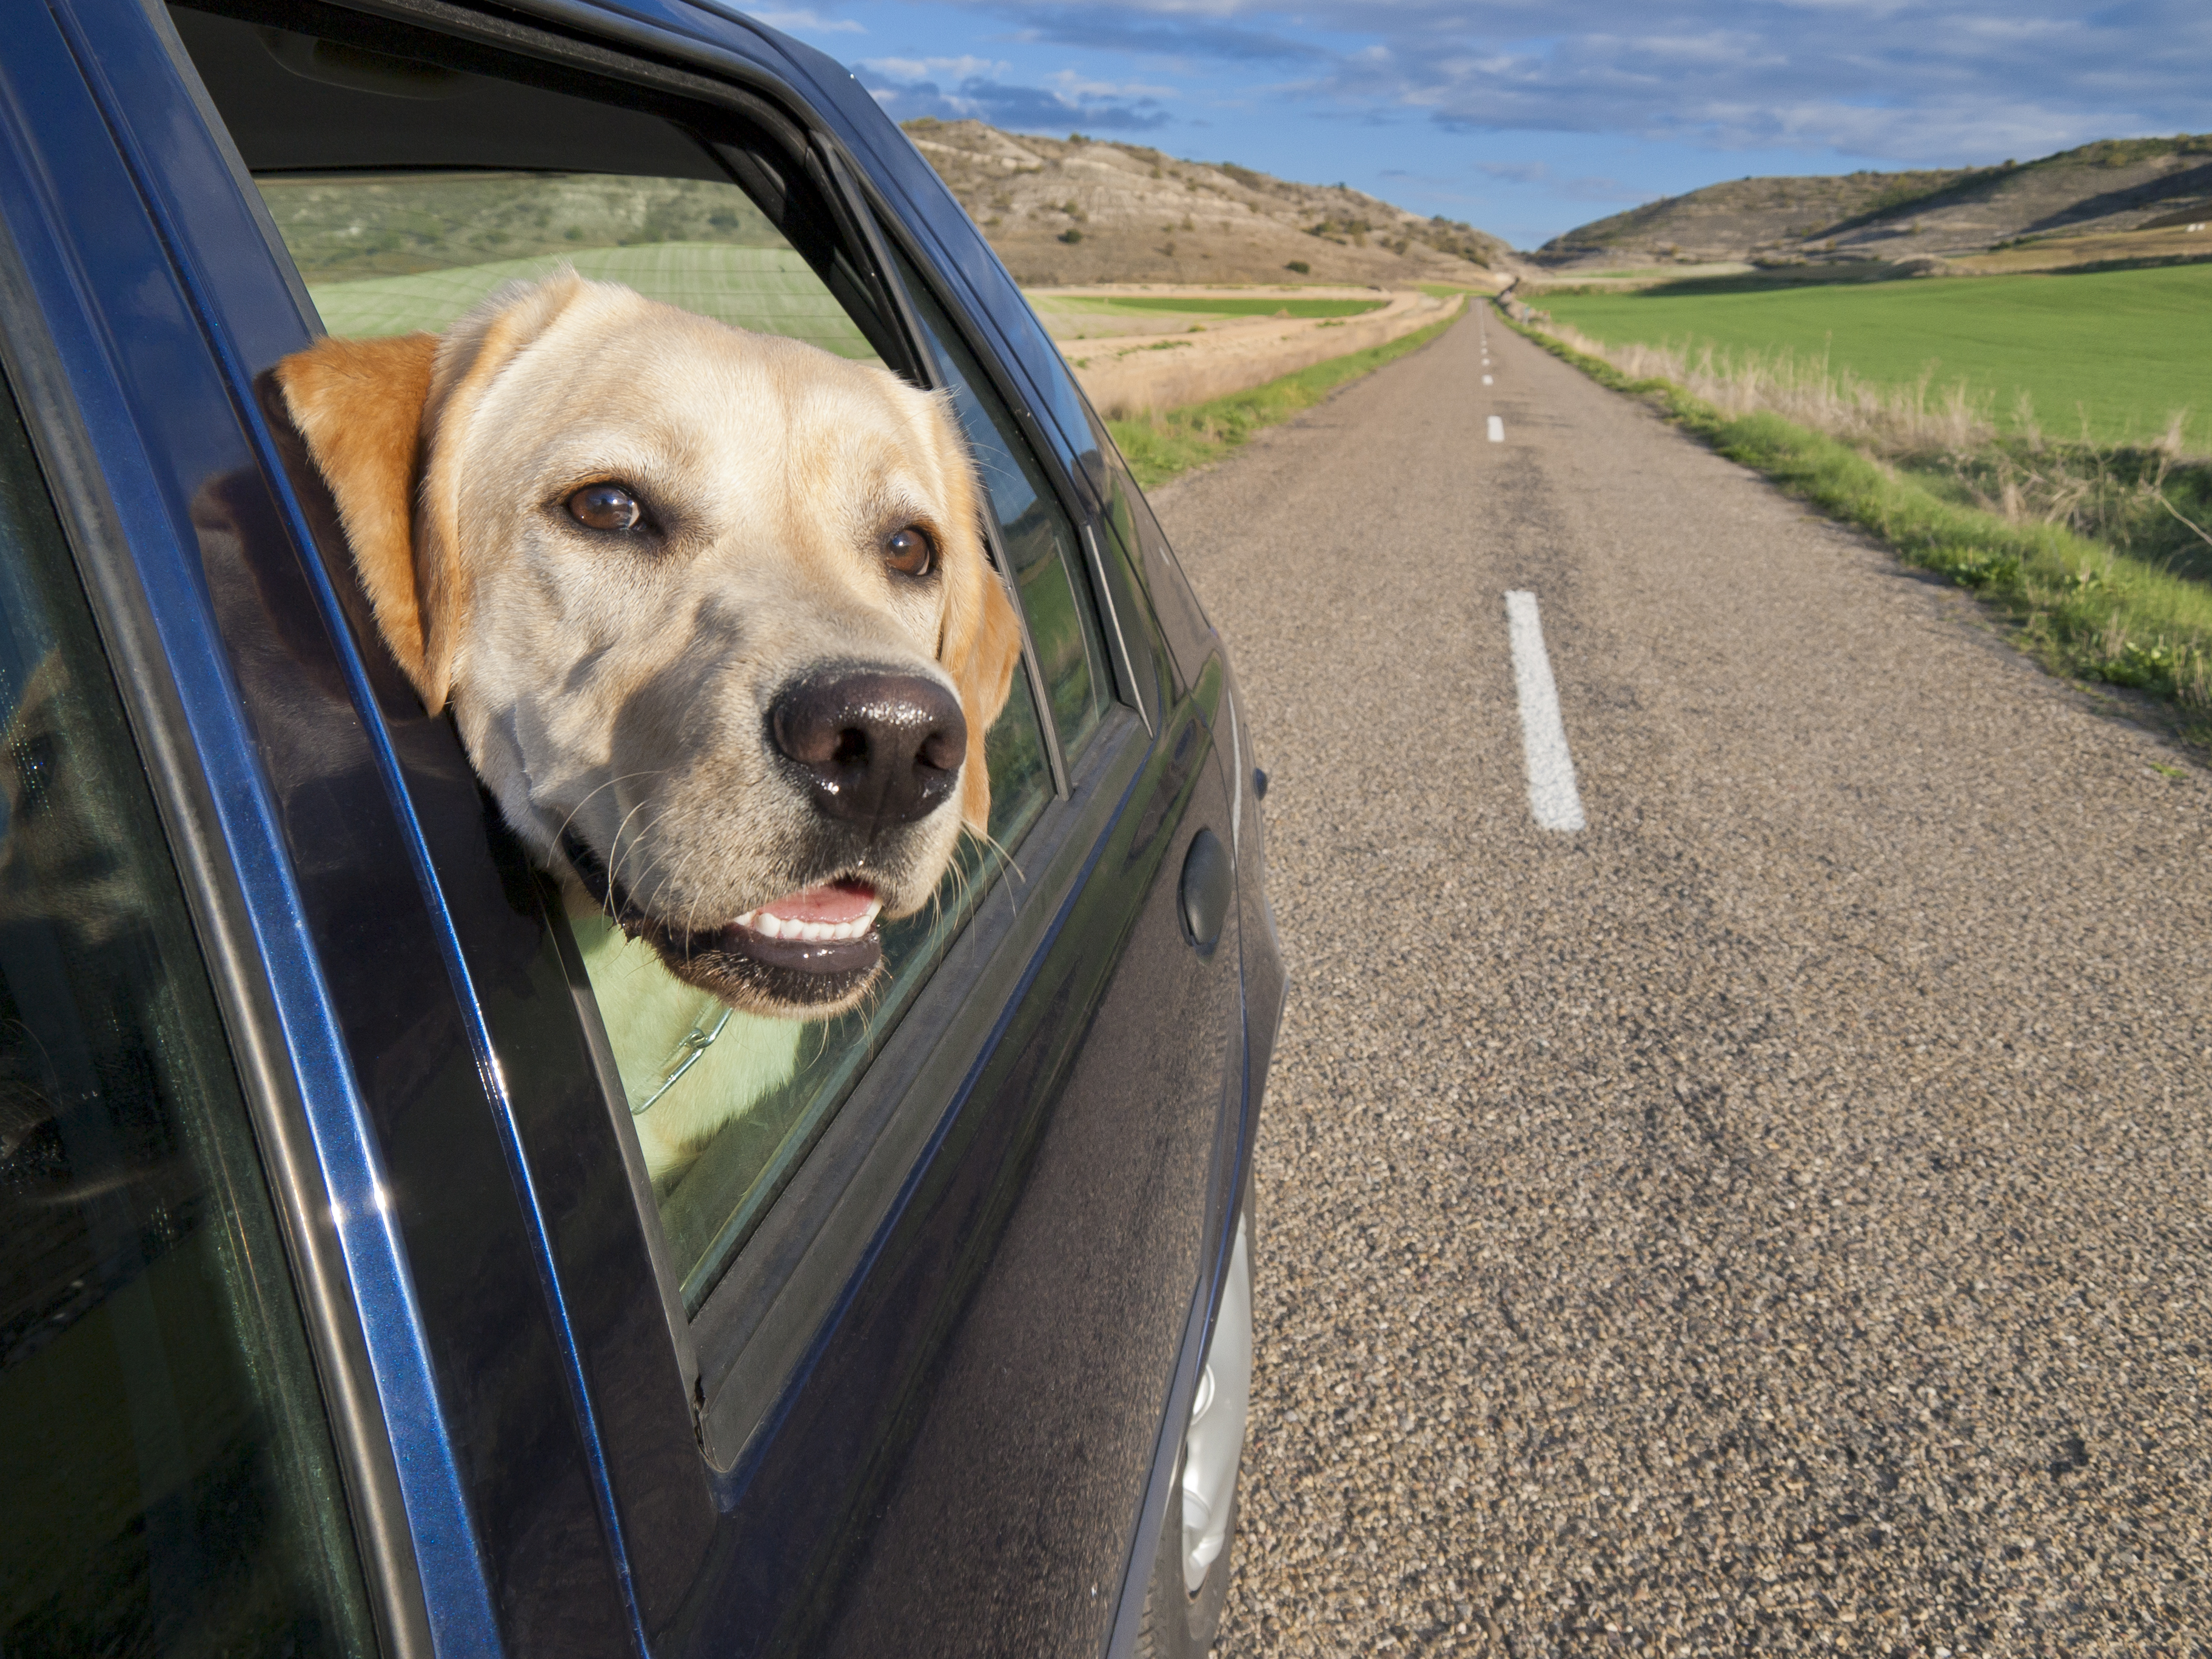 Summer is the perfect time to hit the road and explore new sights with your pup. Here are a few unique activities you don't want to miss.